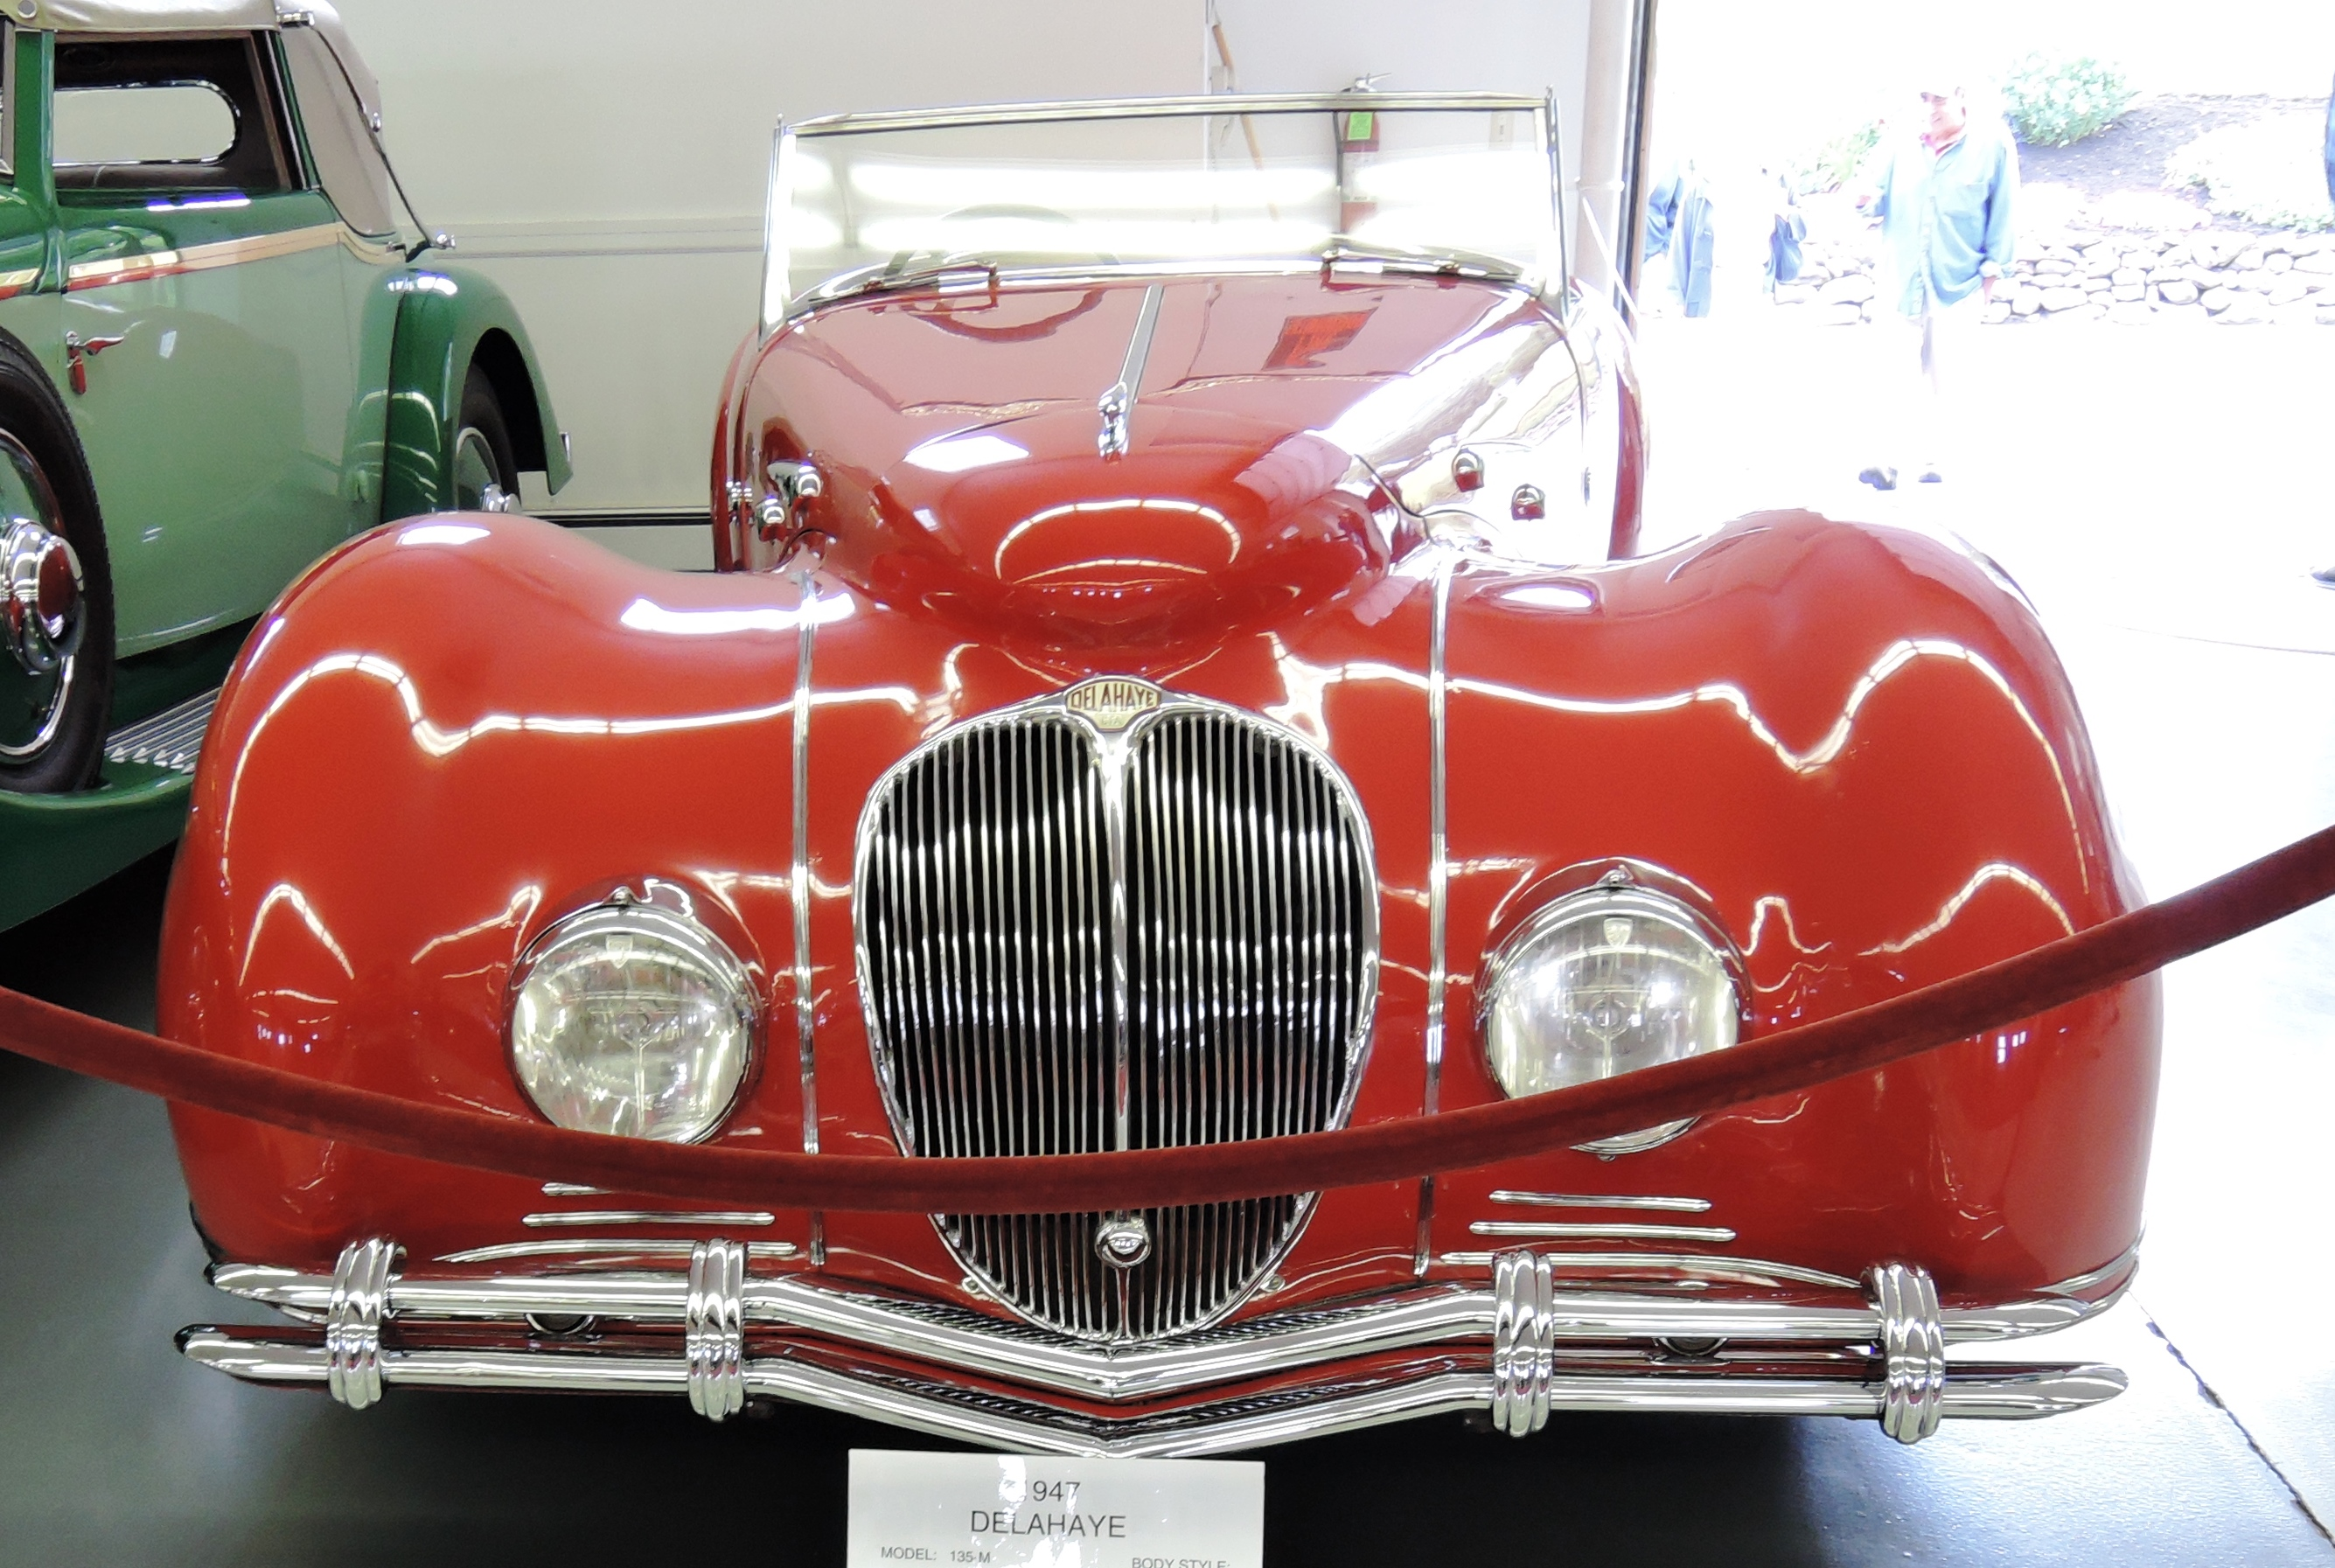 red 1947 Delahaye 135-M Roadster; This is 1 of only 5 Figoni & Filaschi Delahayes - bahre car collection